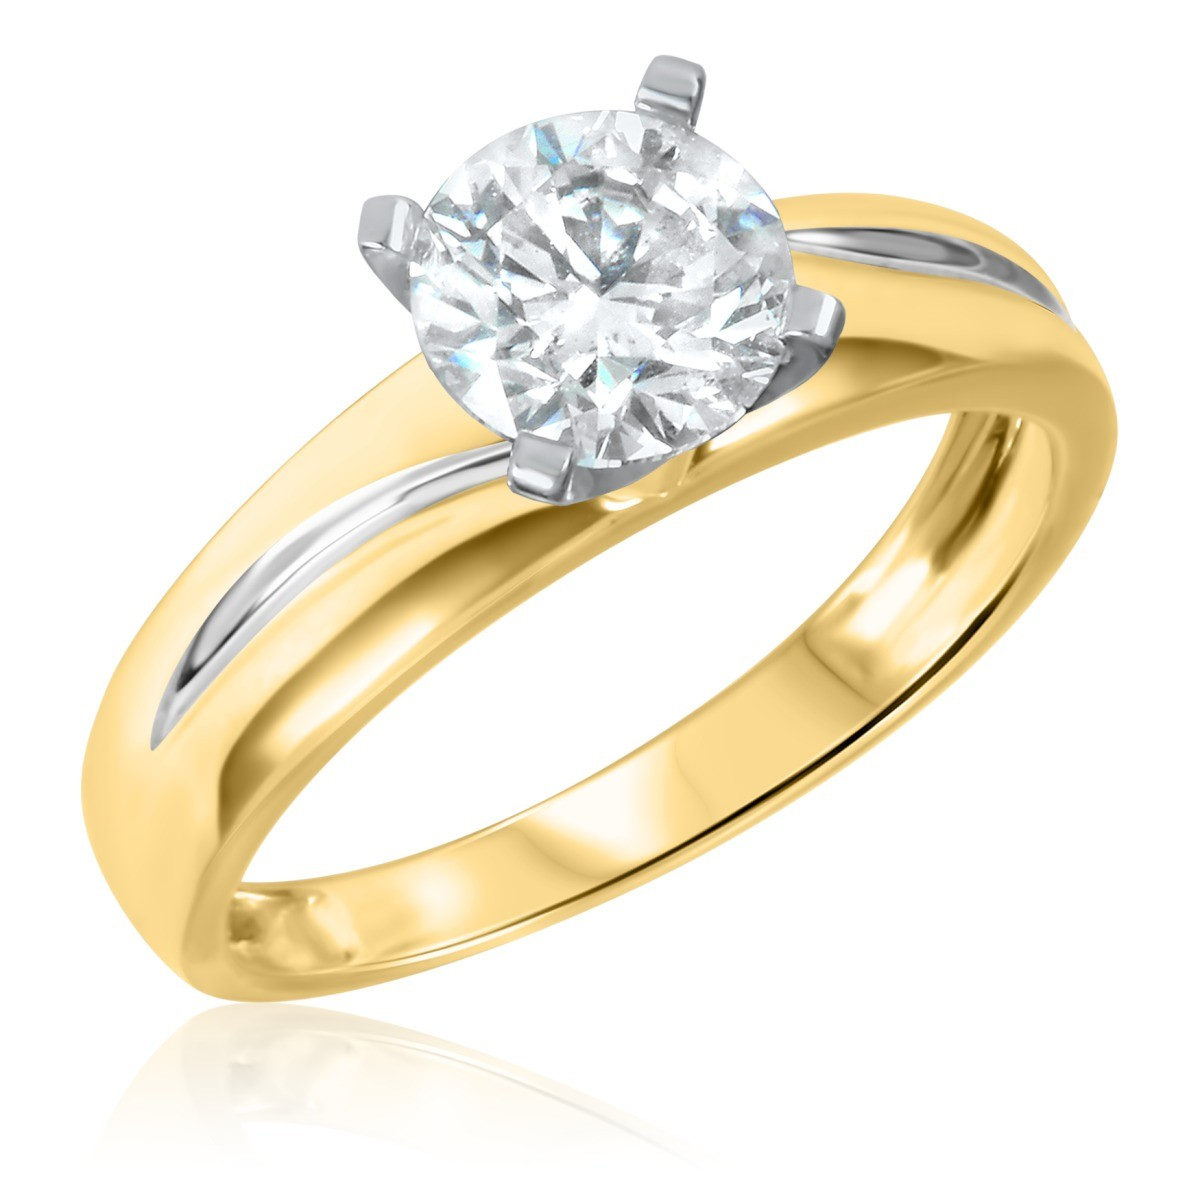 1 CT. T.W. Diamond Ladies Engagement Ring 10K Yellow Gold